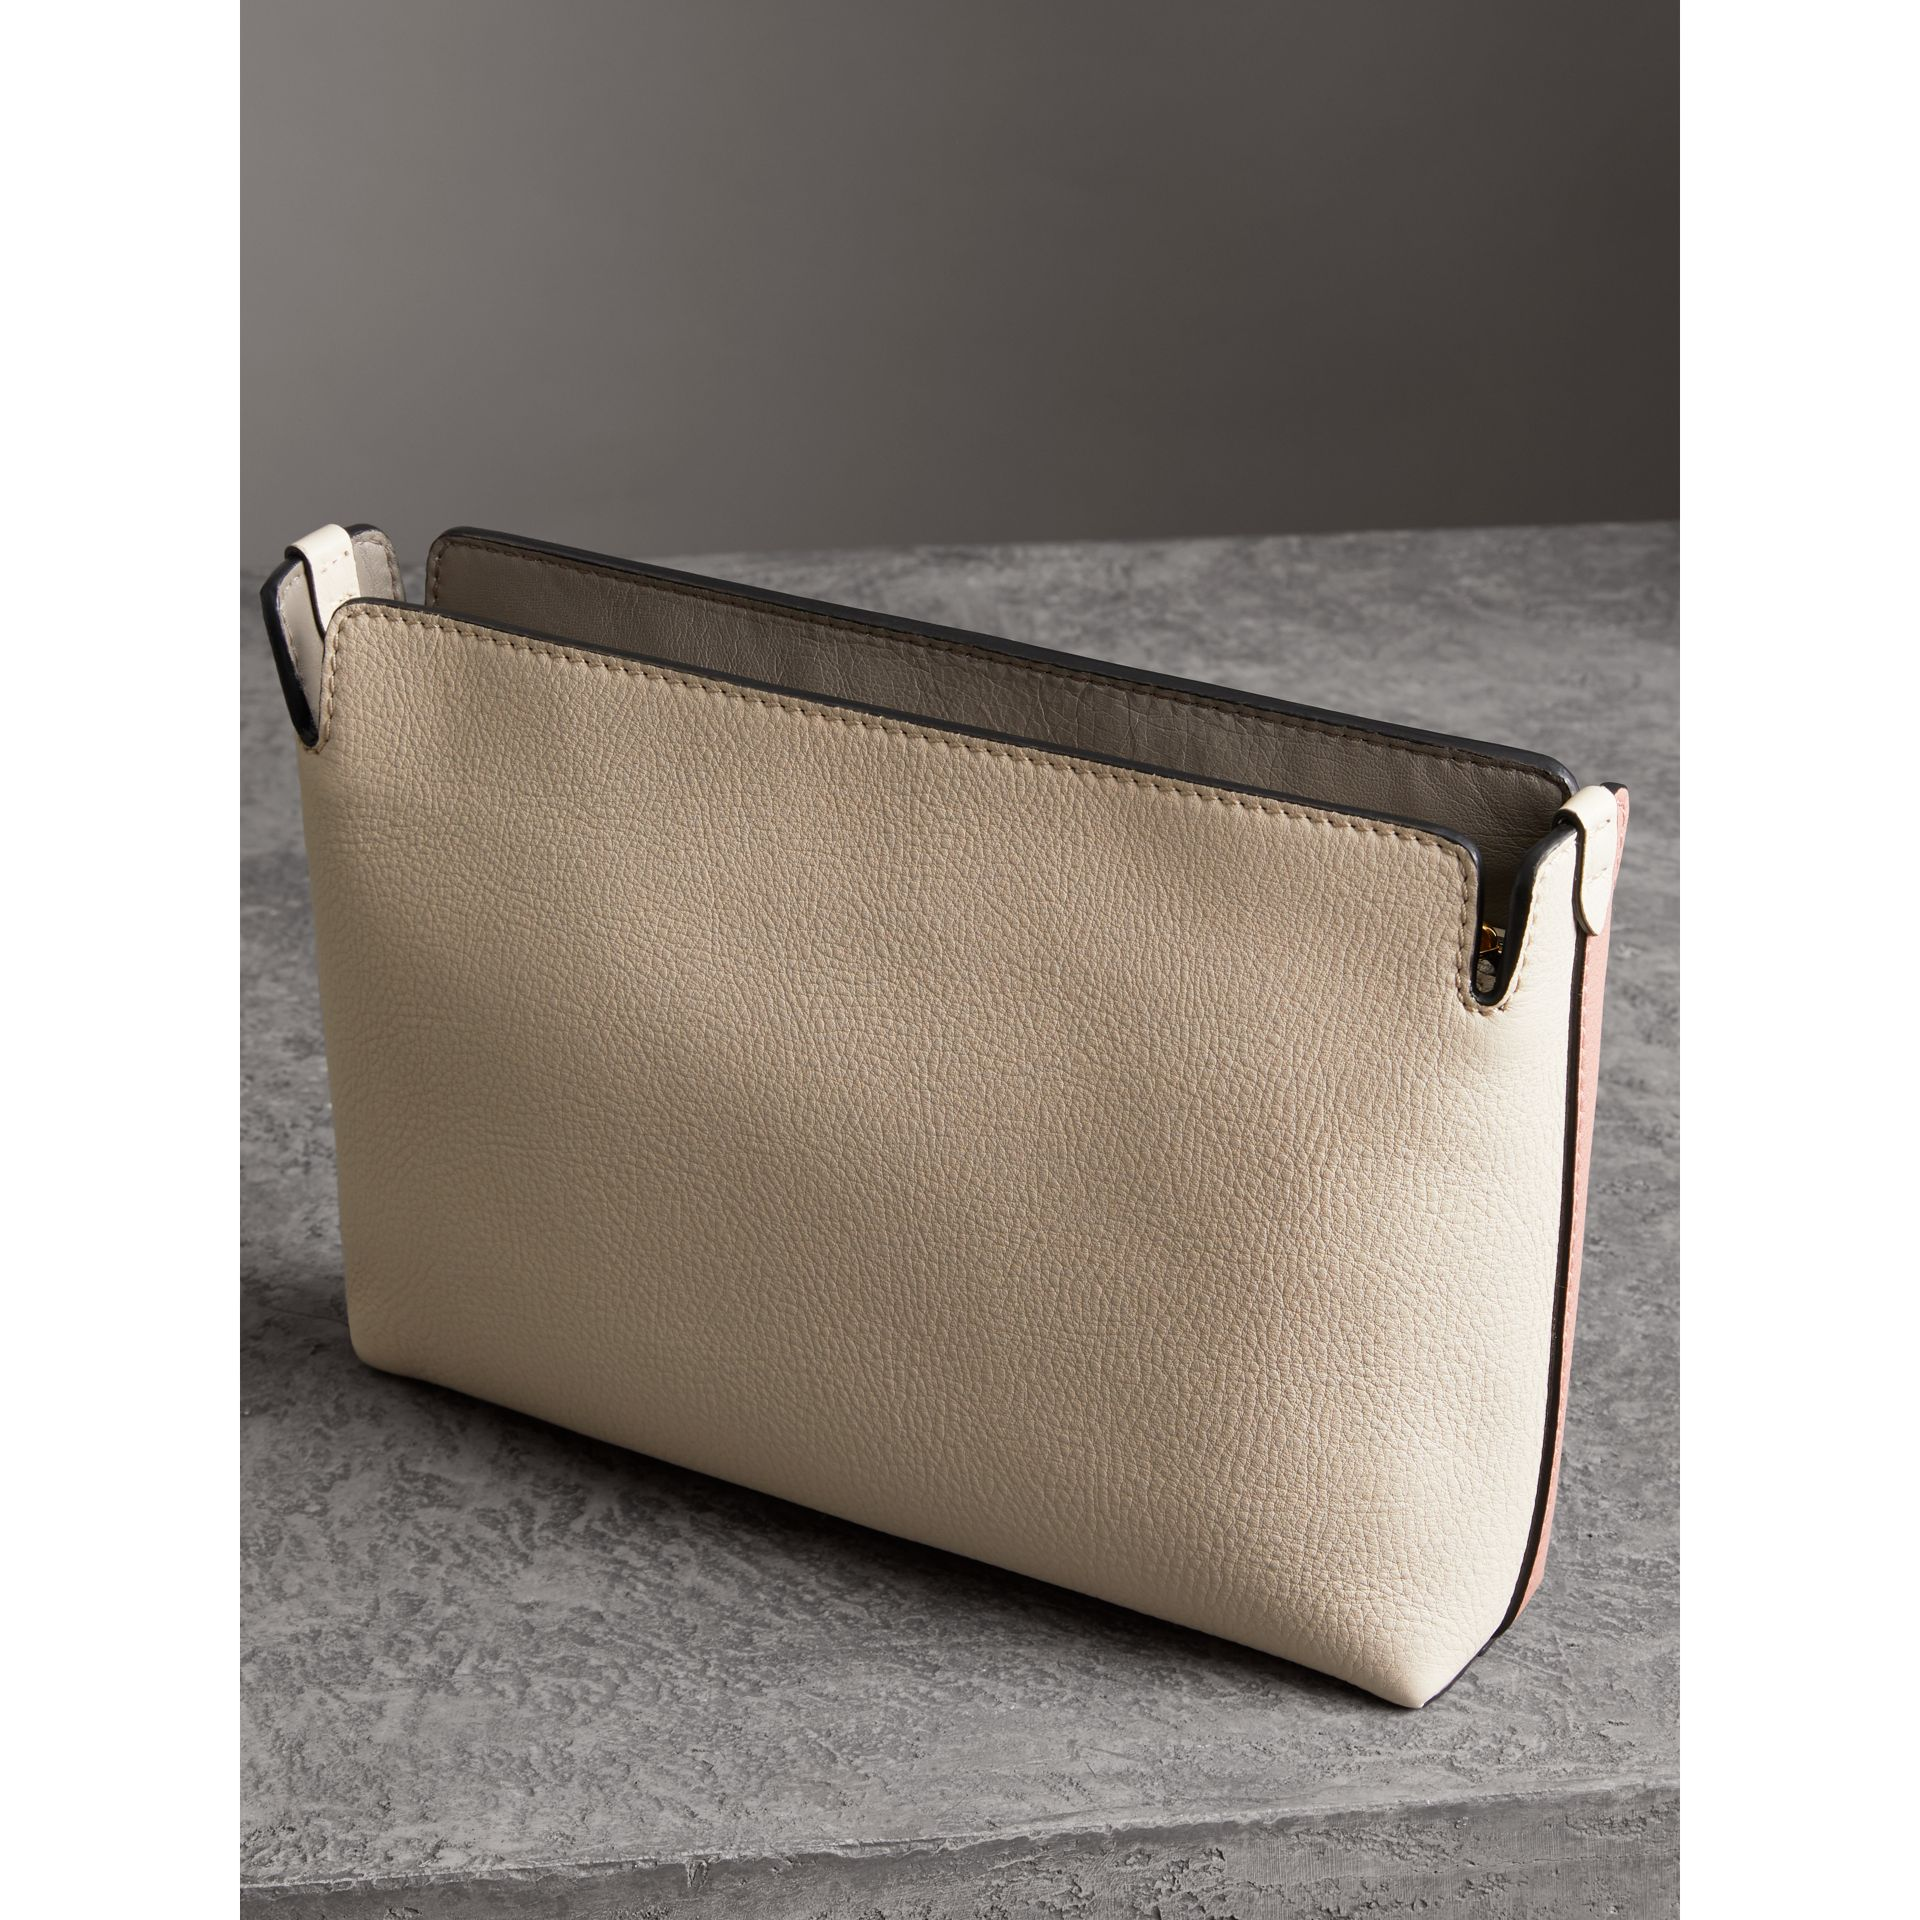 Medium Tri-tone Leather Clutch in Dusty Rose/limestone | Burberry United Kingdom - gallery image 4